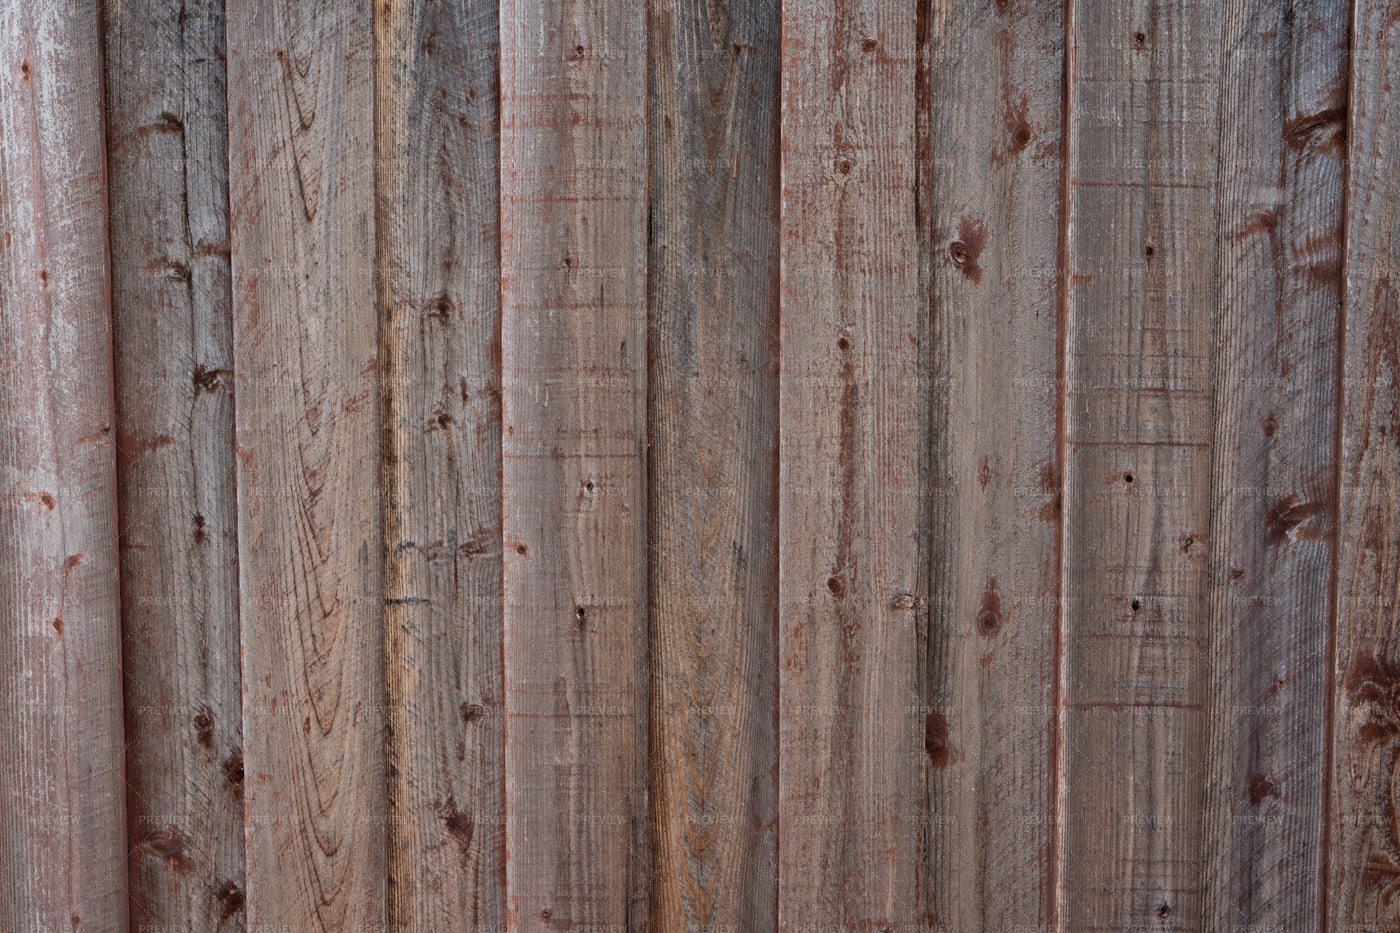 Rustic Wooden Fence: Stock Photos